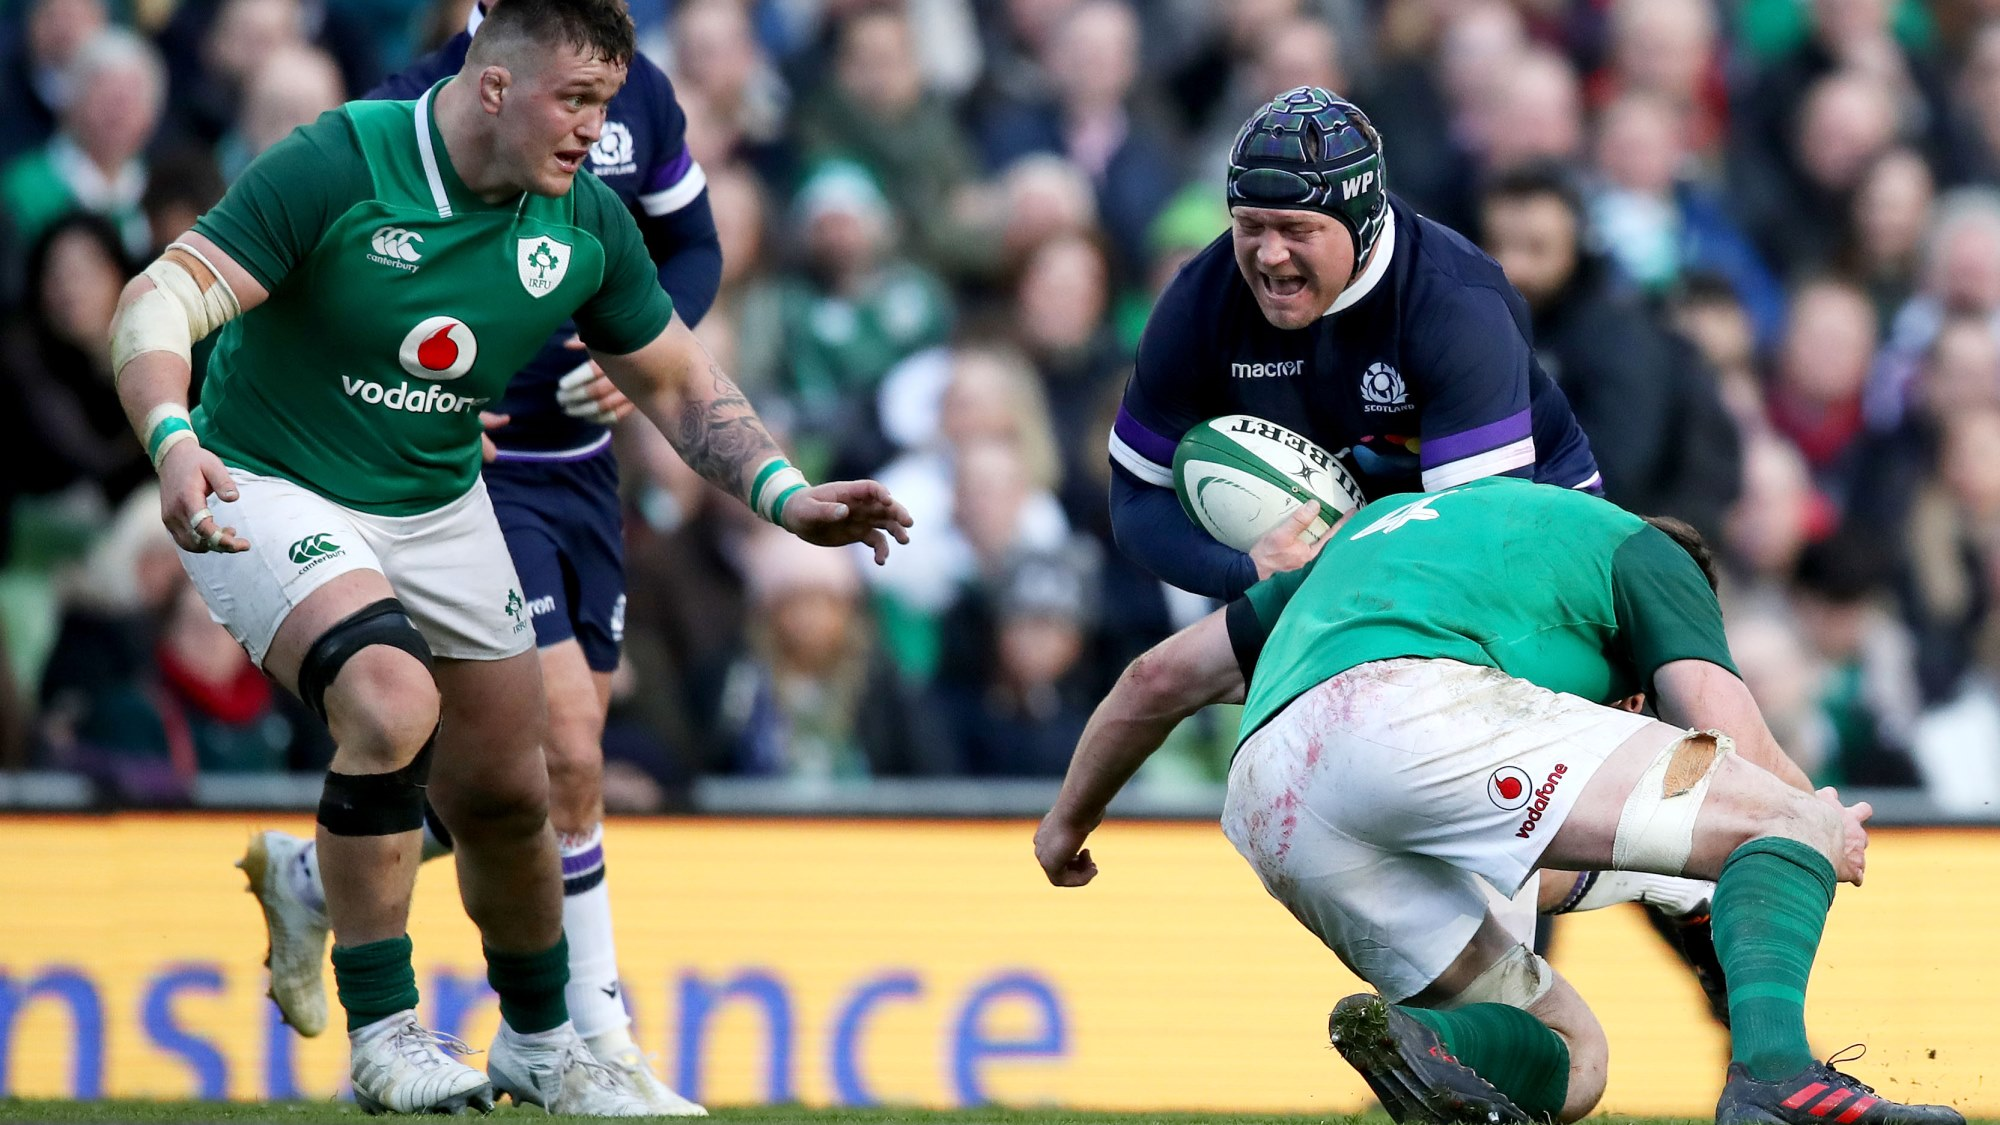 Man-of-the-match Nel imperious in Edinburgh win